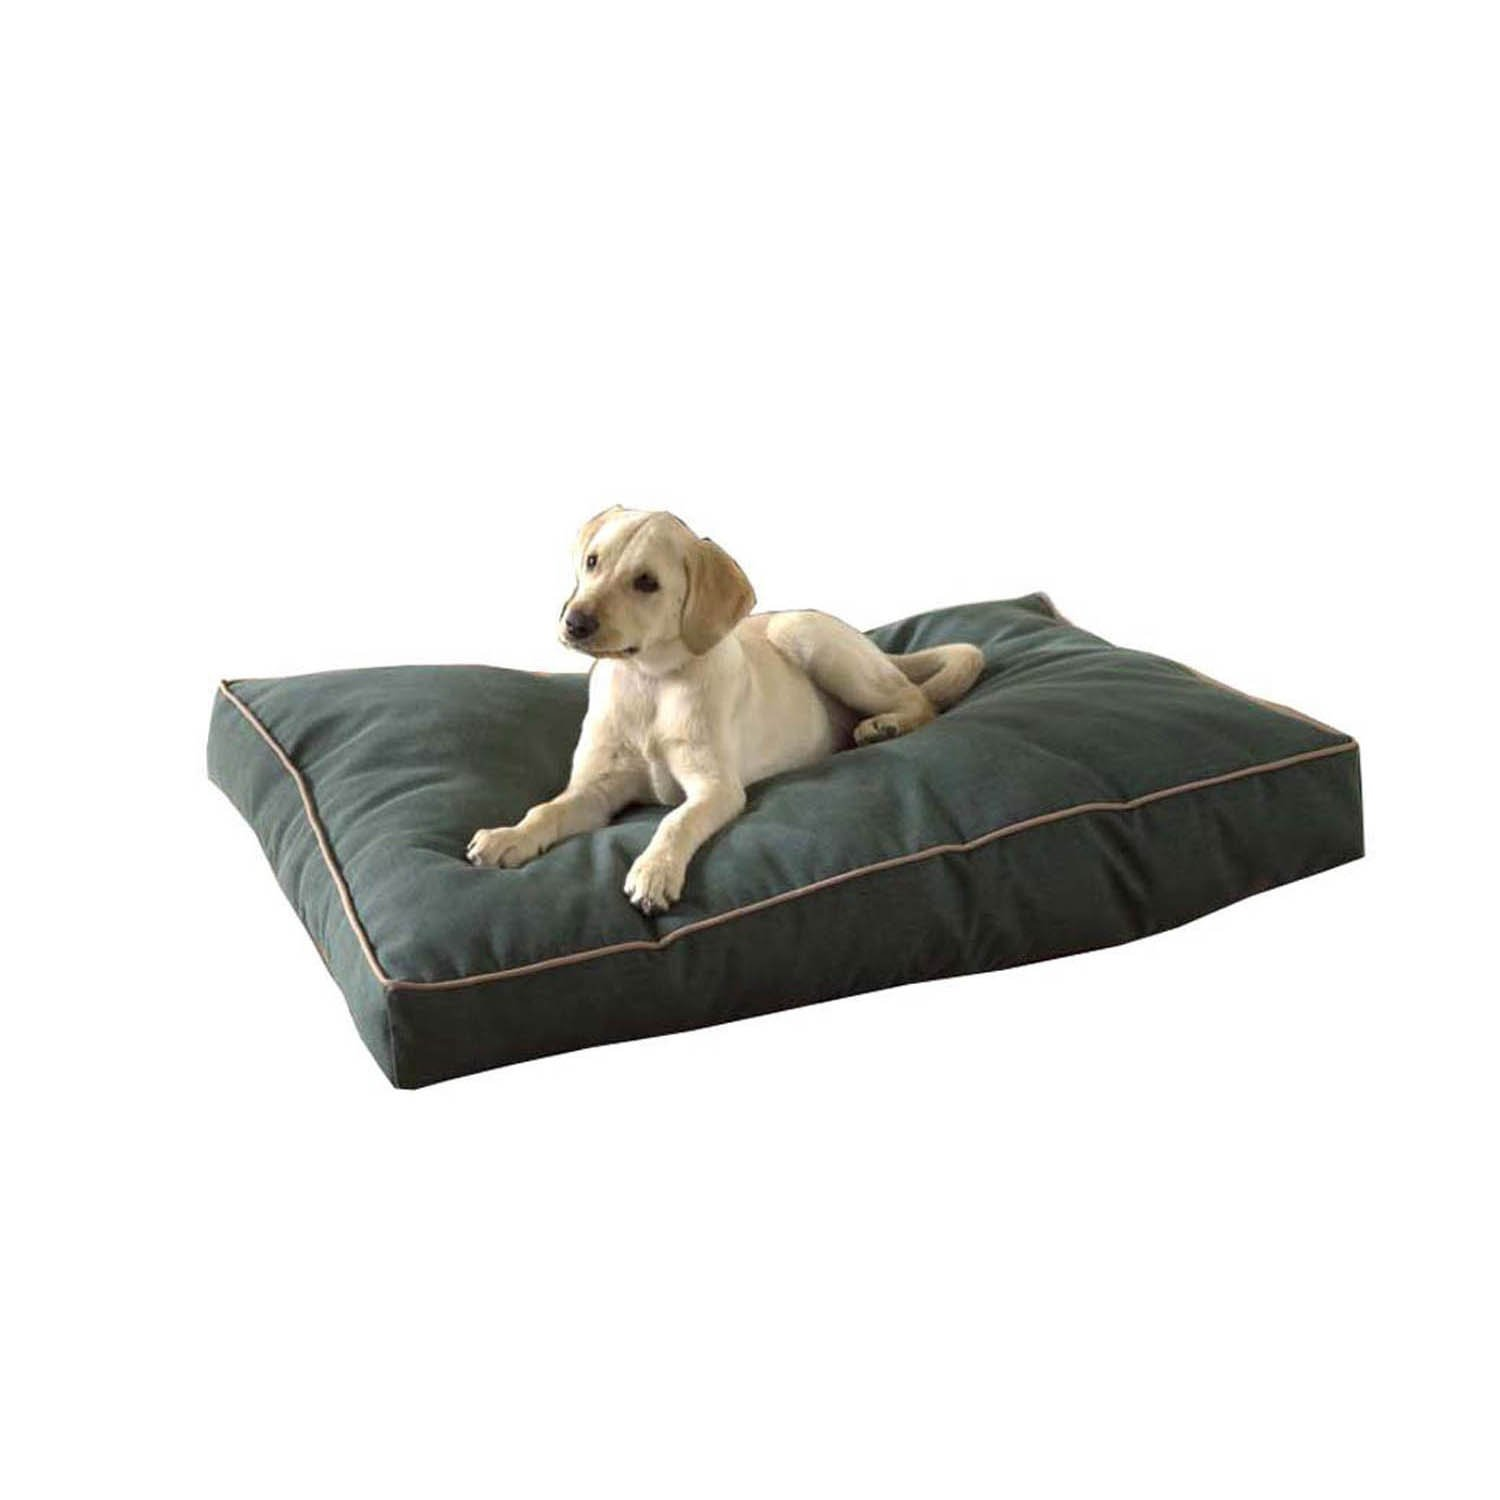 tufted accessories foam images bed petco on stuff best cream heaven products gray memory pinterest beds dog to